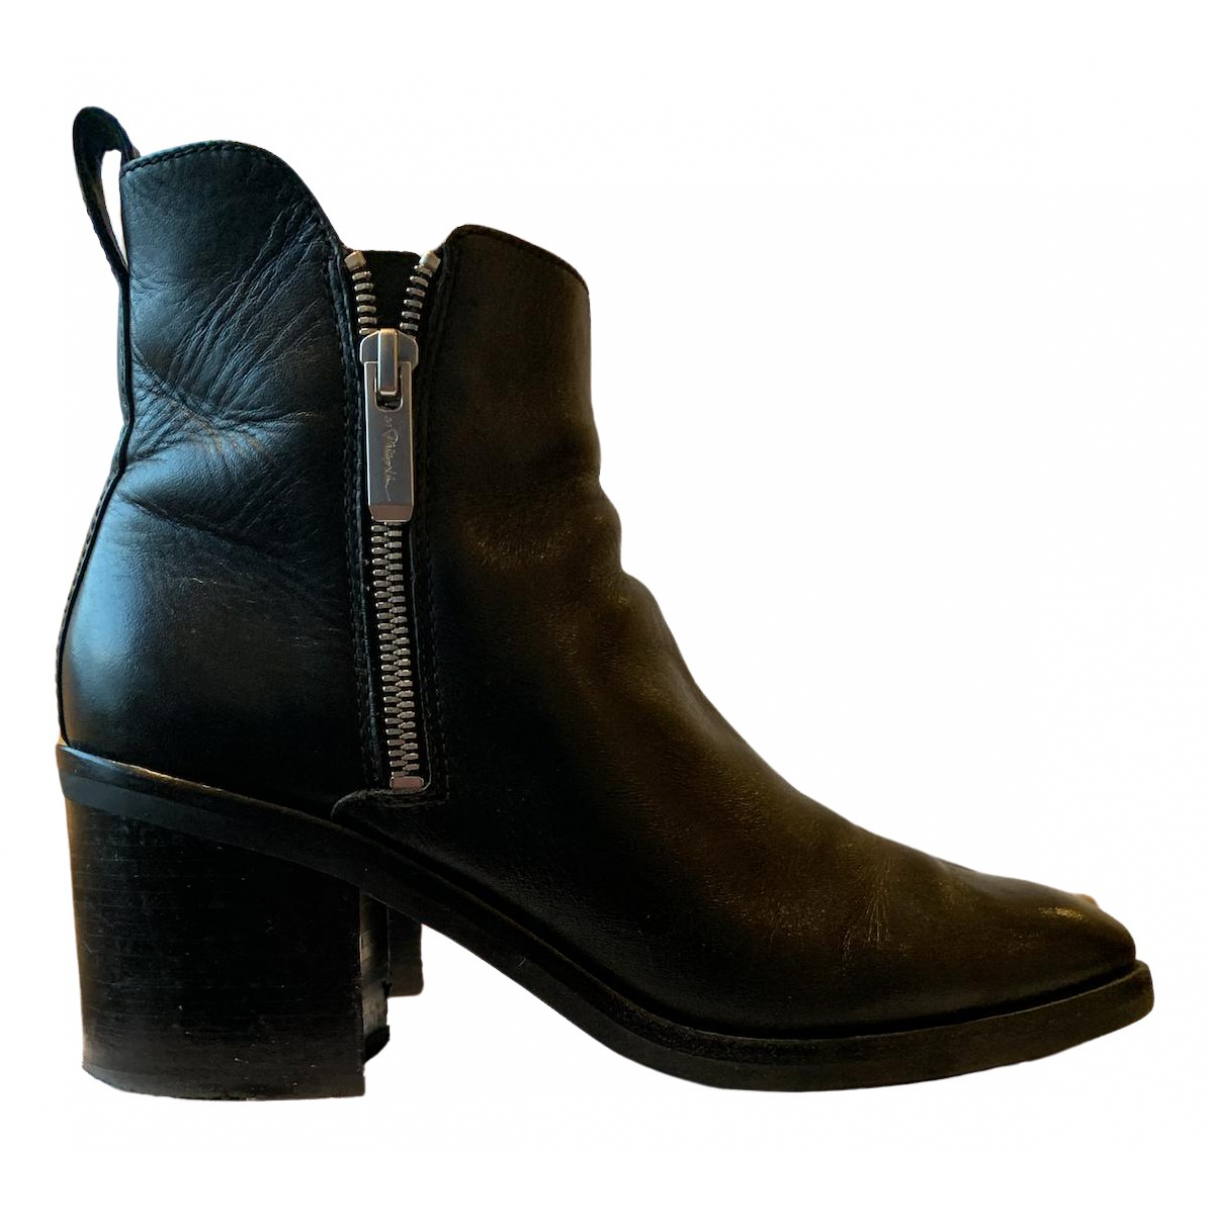 3.1 Phillip Lim \N Black Leather Ankle boots for Women 38 EU